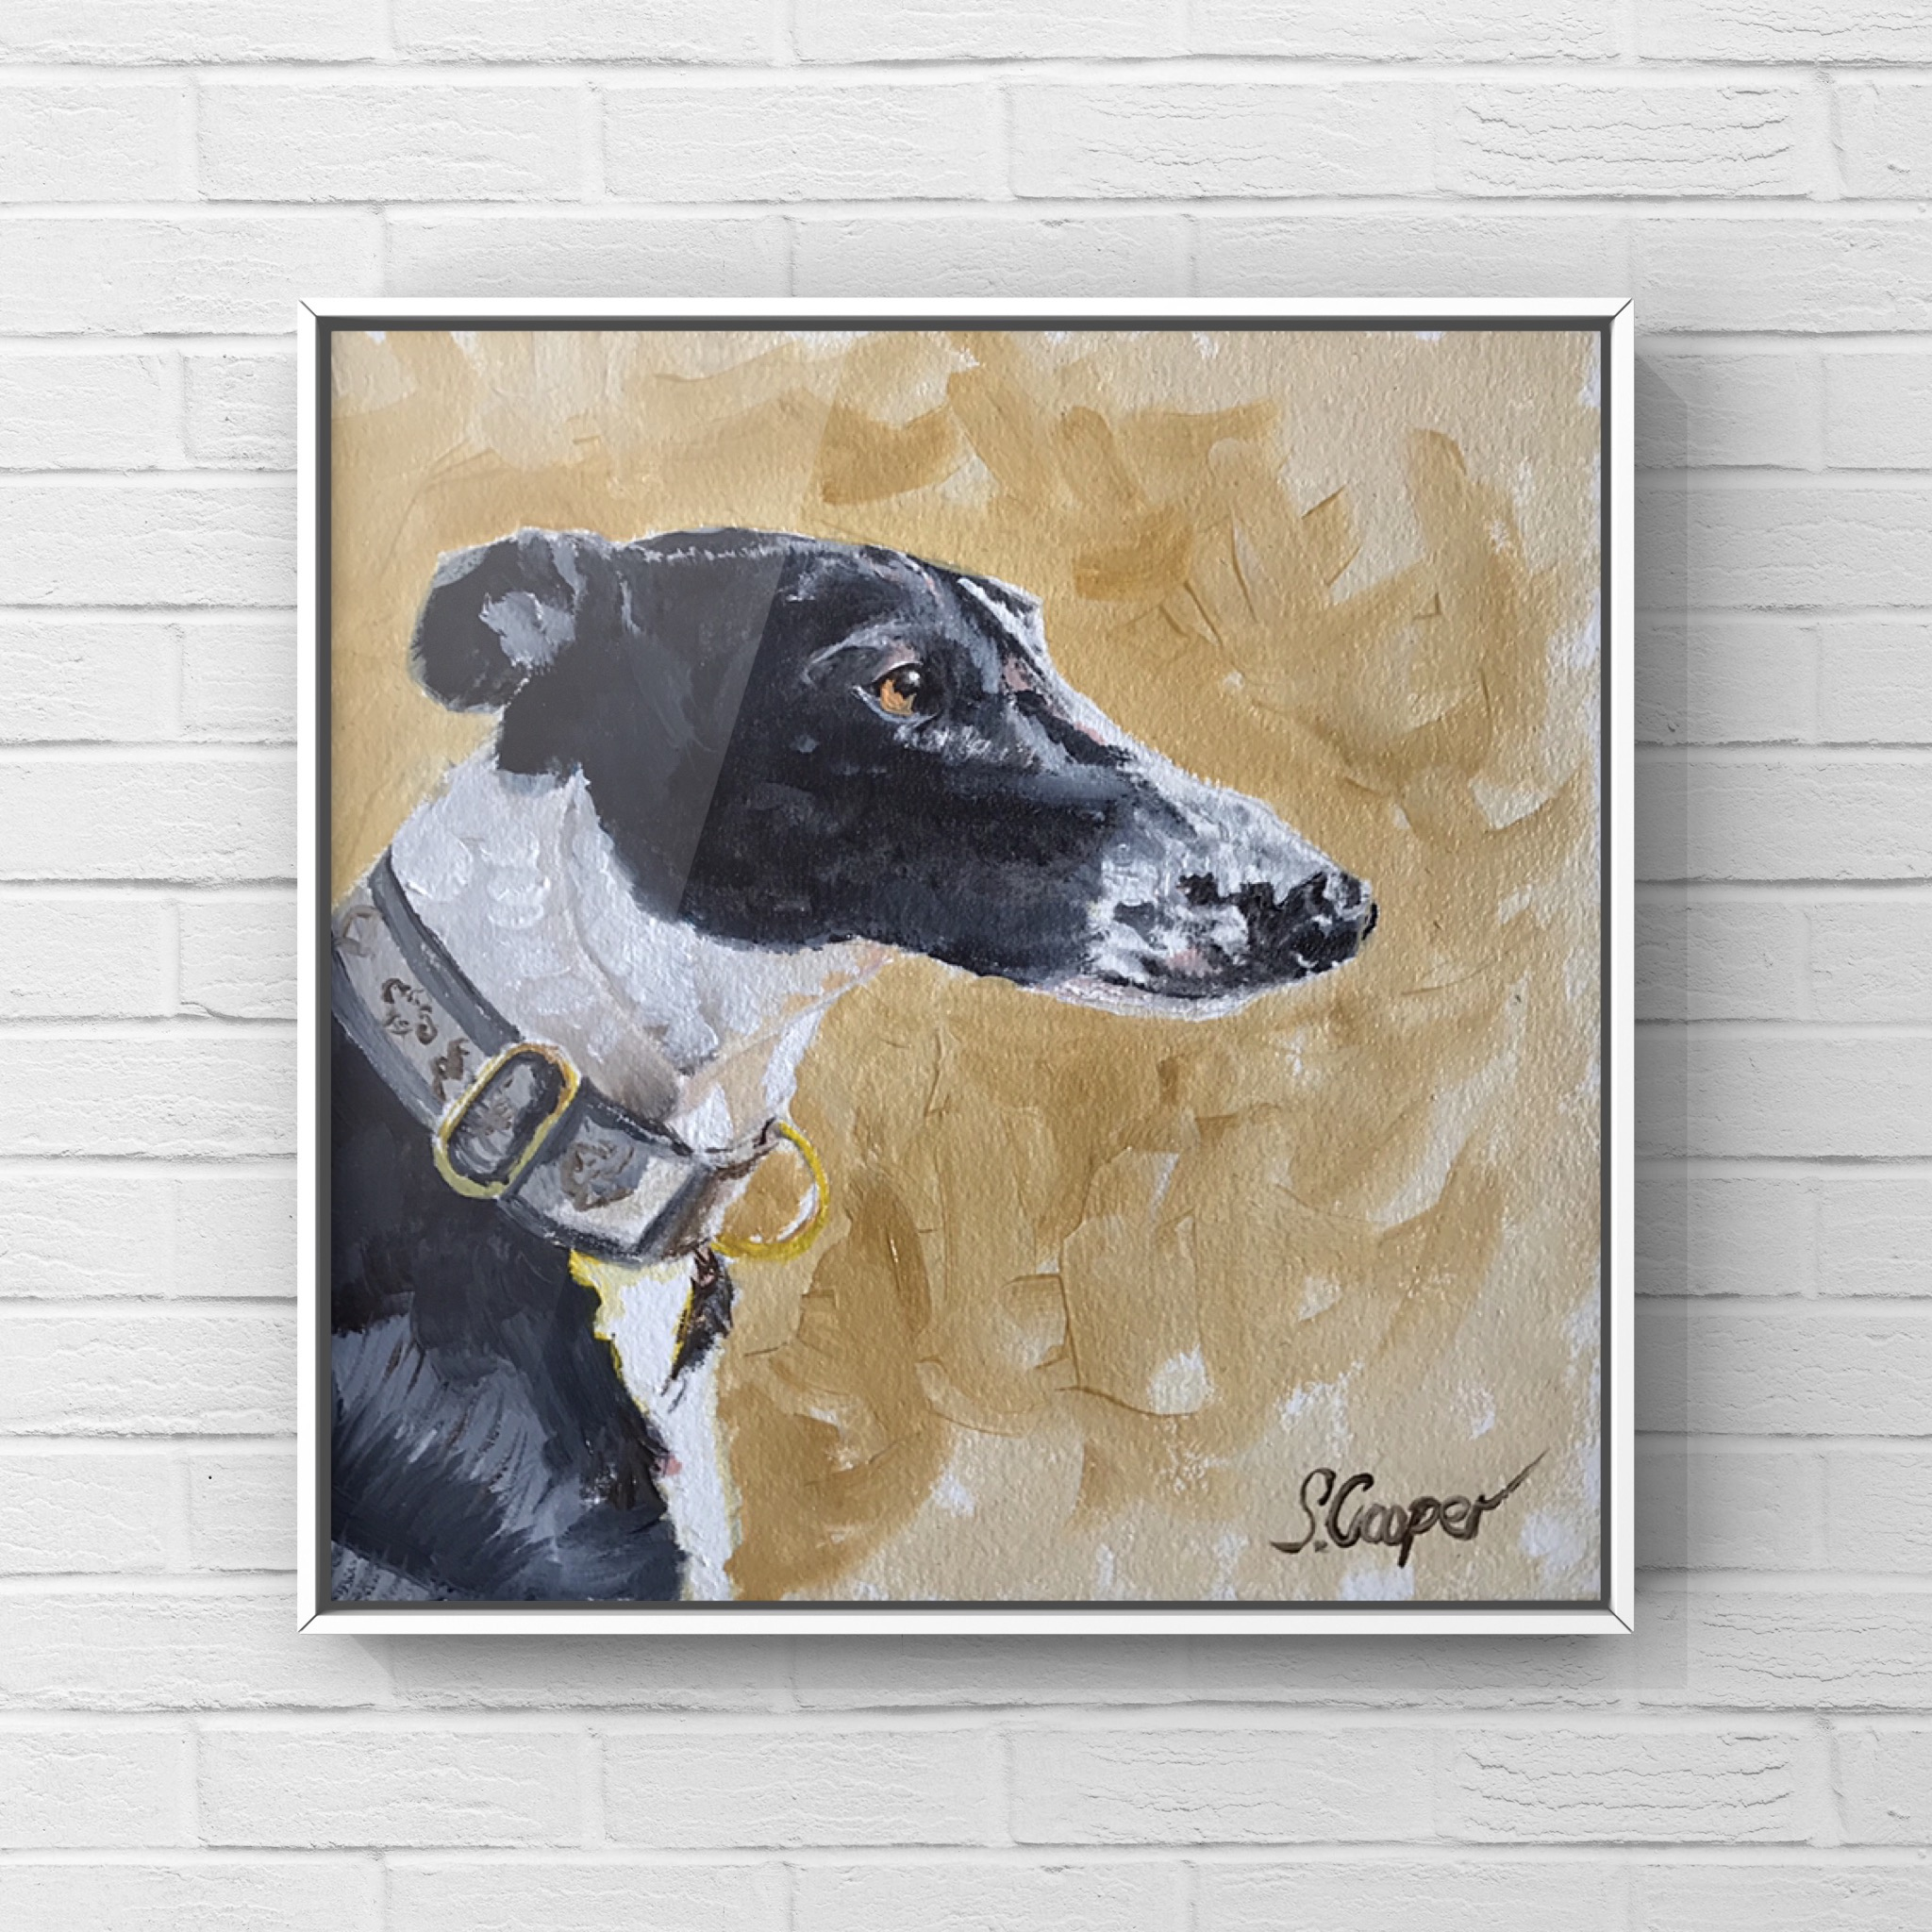 Benjie the Greyhound - oils